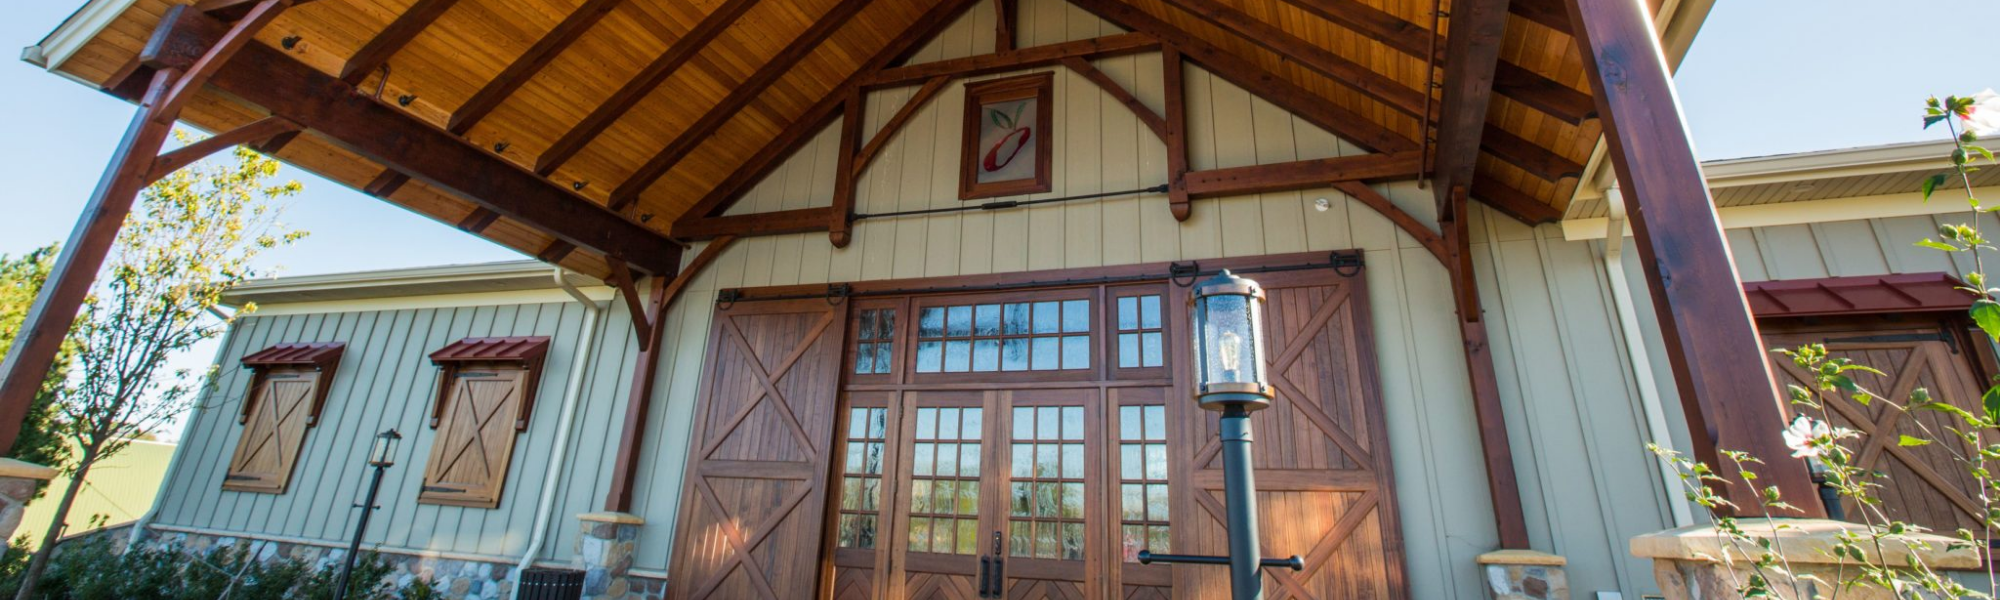 Maintaining Your Timber Frame Structure